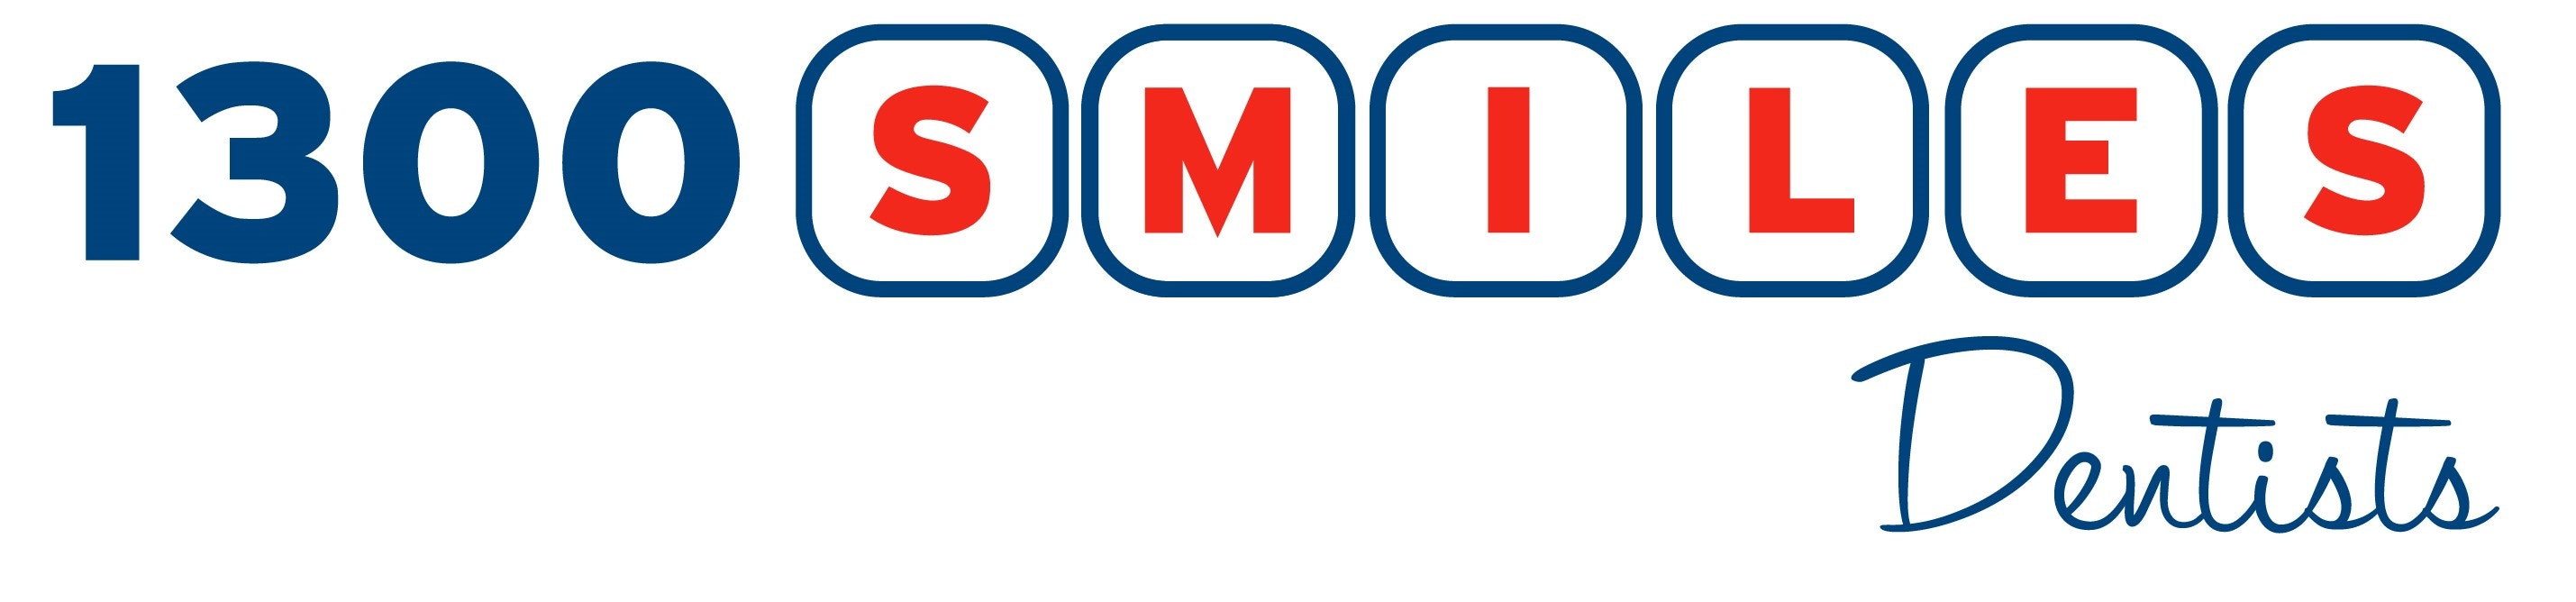 logo for 1300 Smiles - Toowoomba Dentists